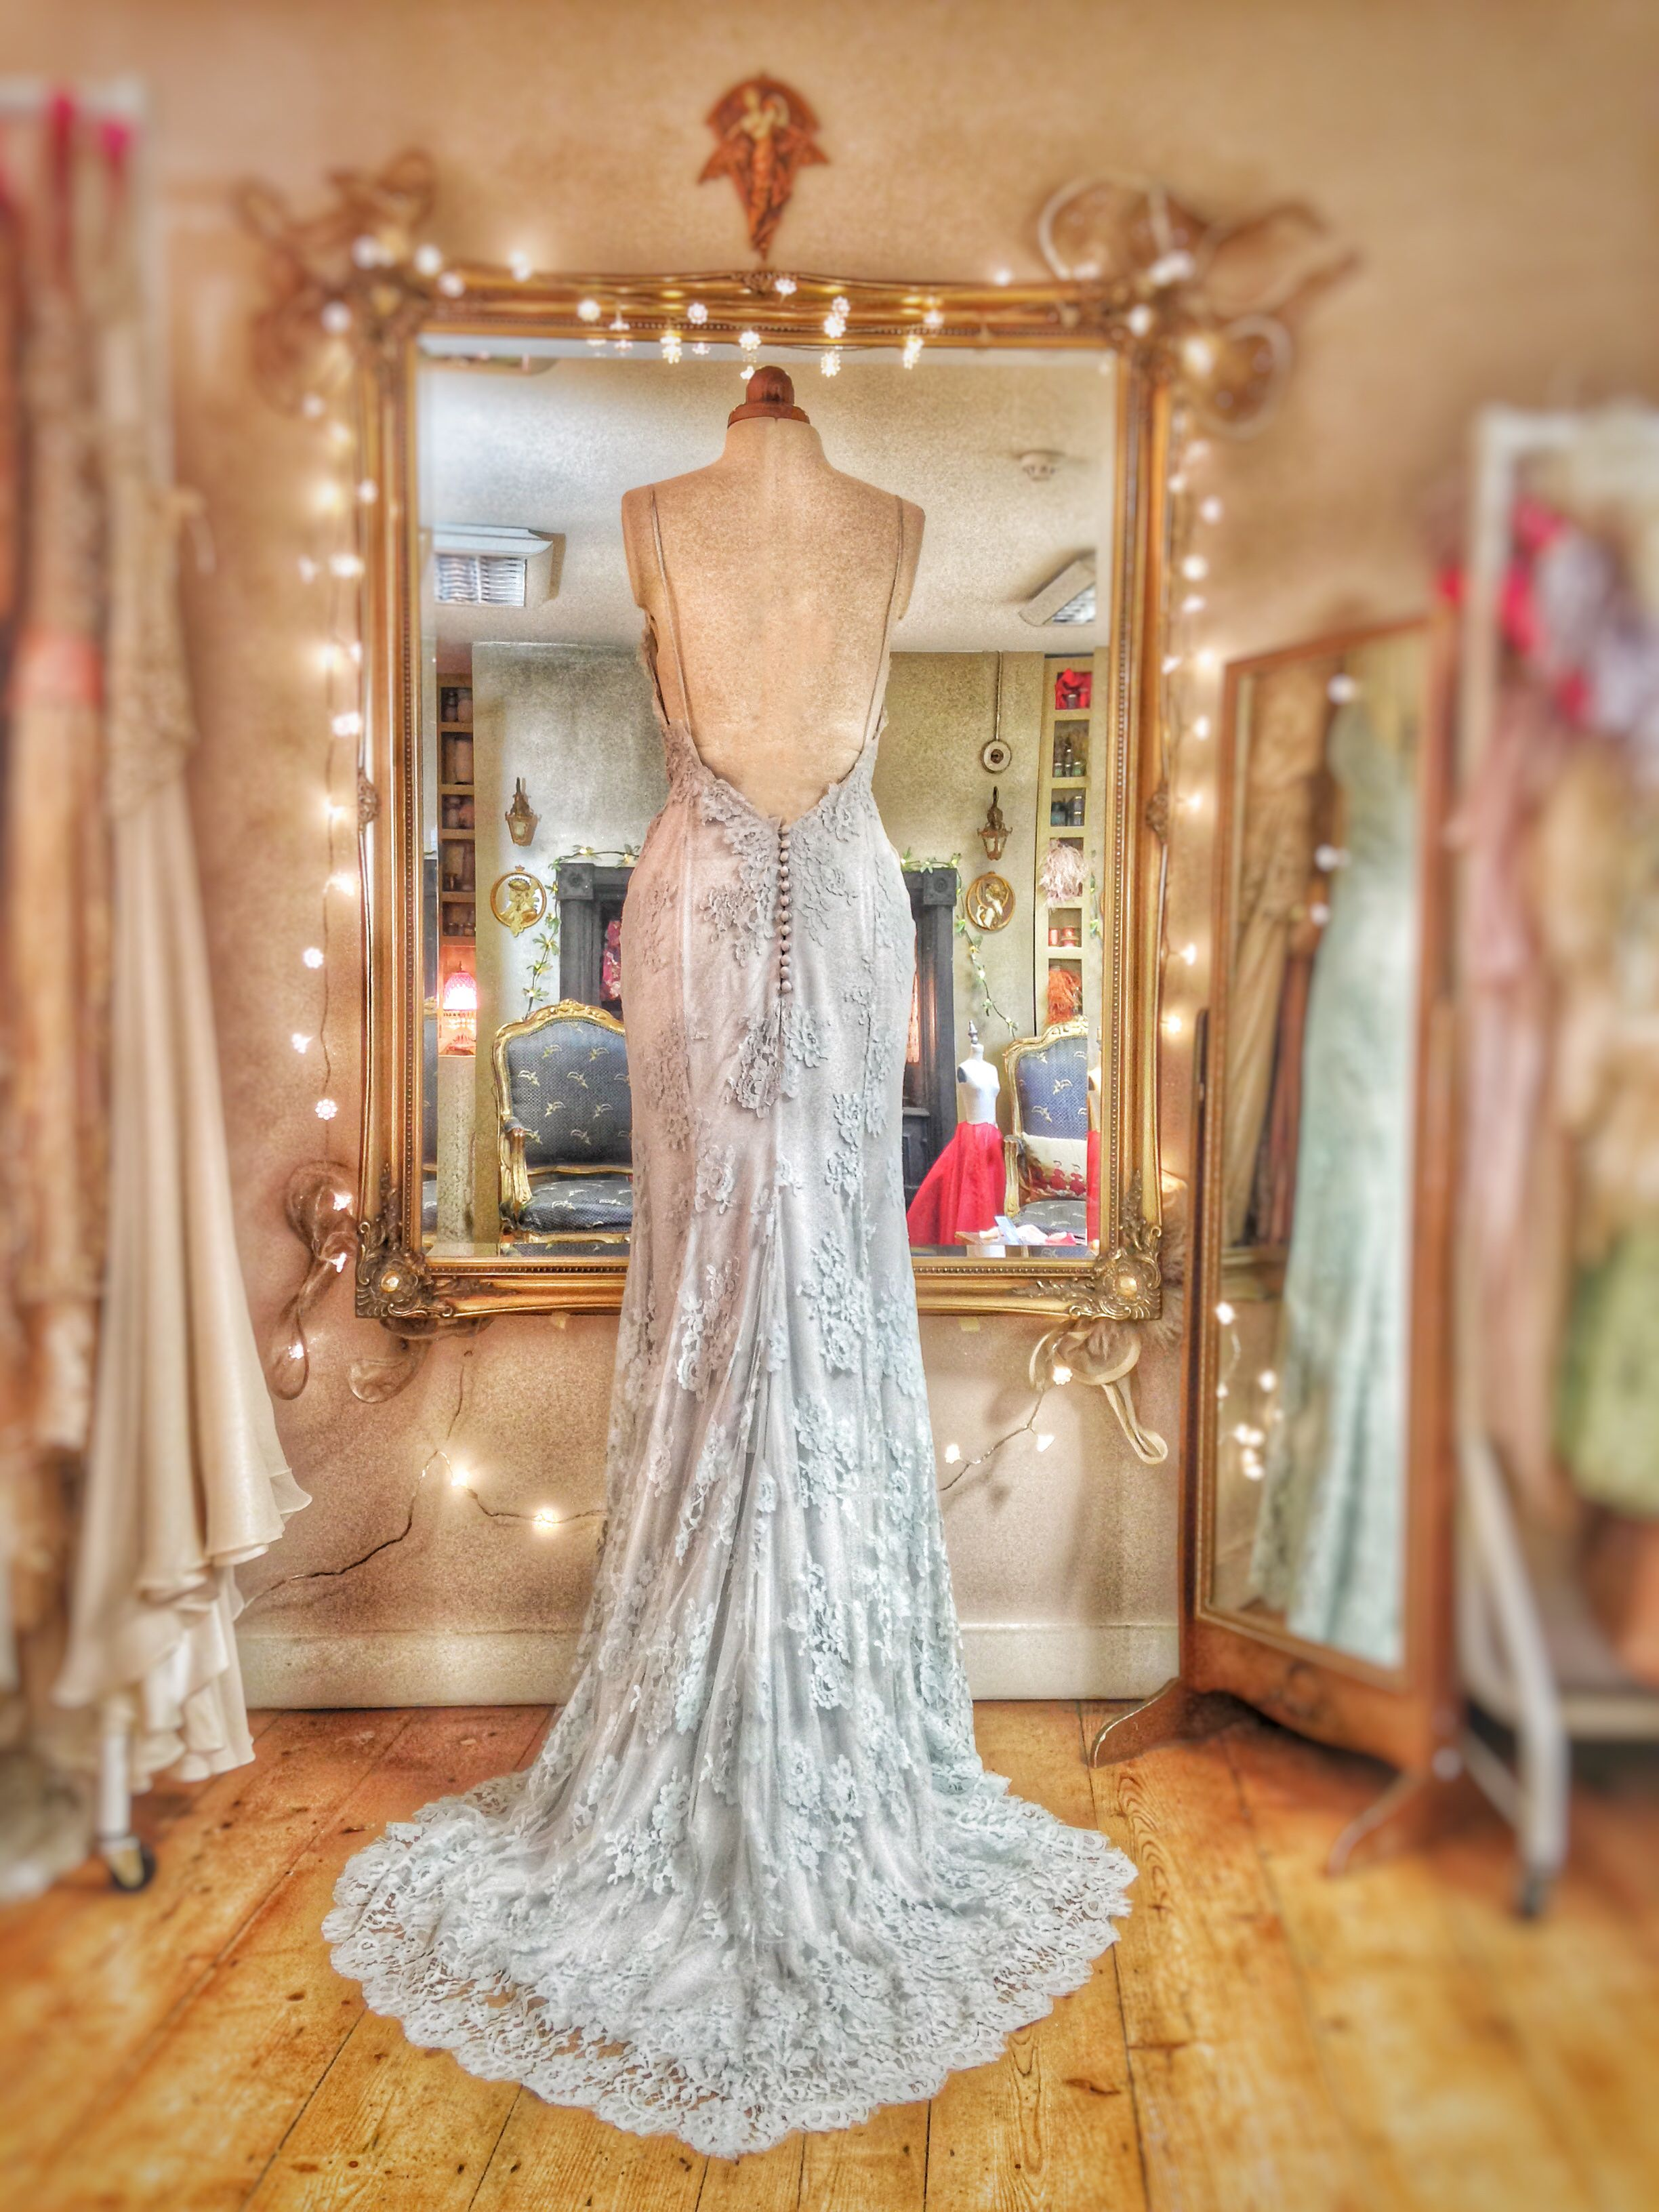 Pale blue custom dyed french lace and silk chiffon wedding dress by